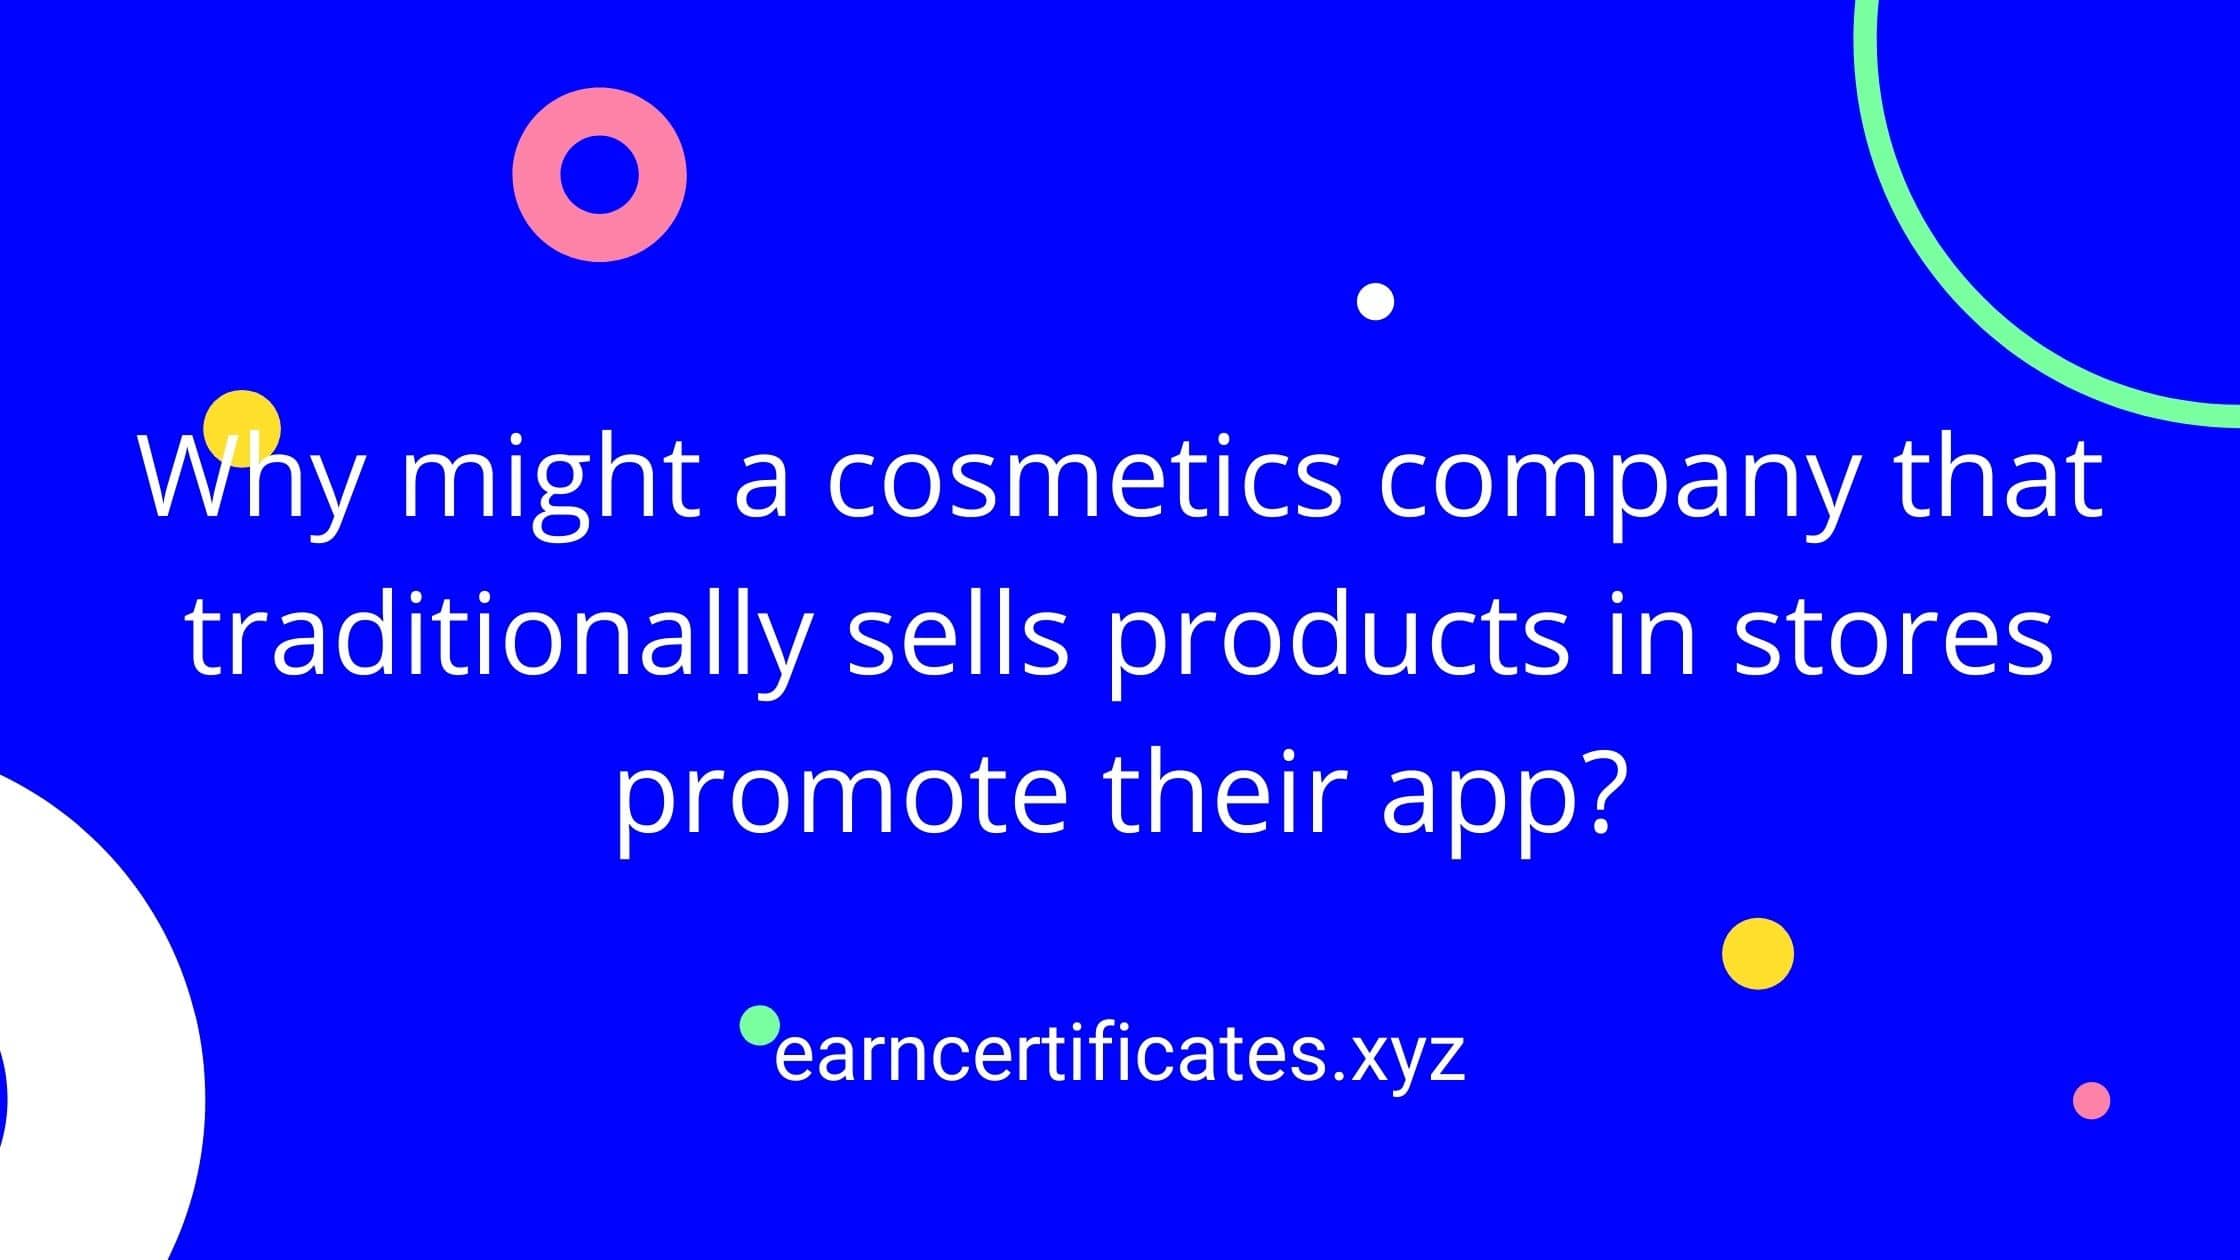 Why might a cosmetics company that traditionally sells products in stores promote their app?